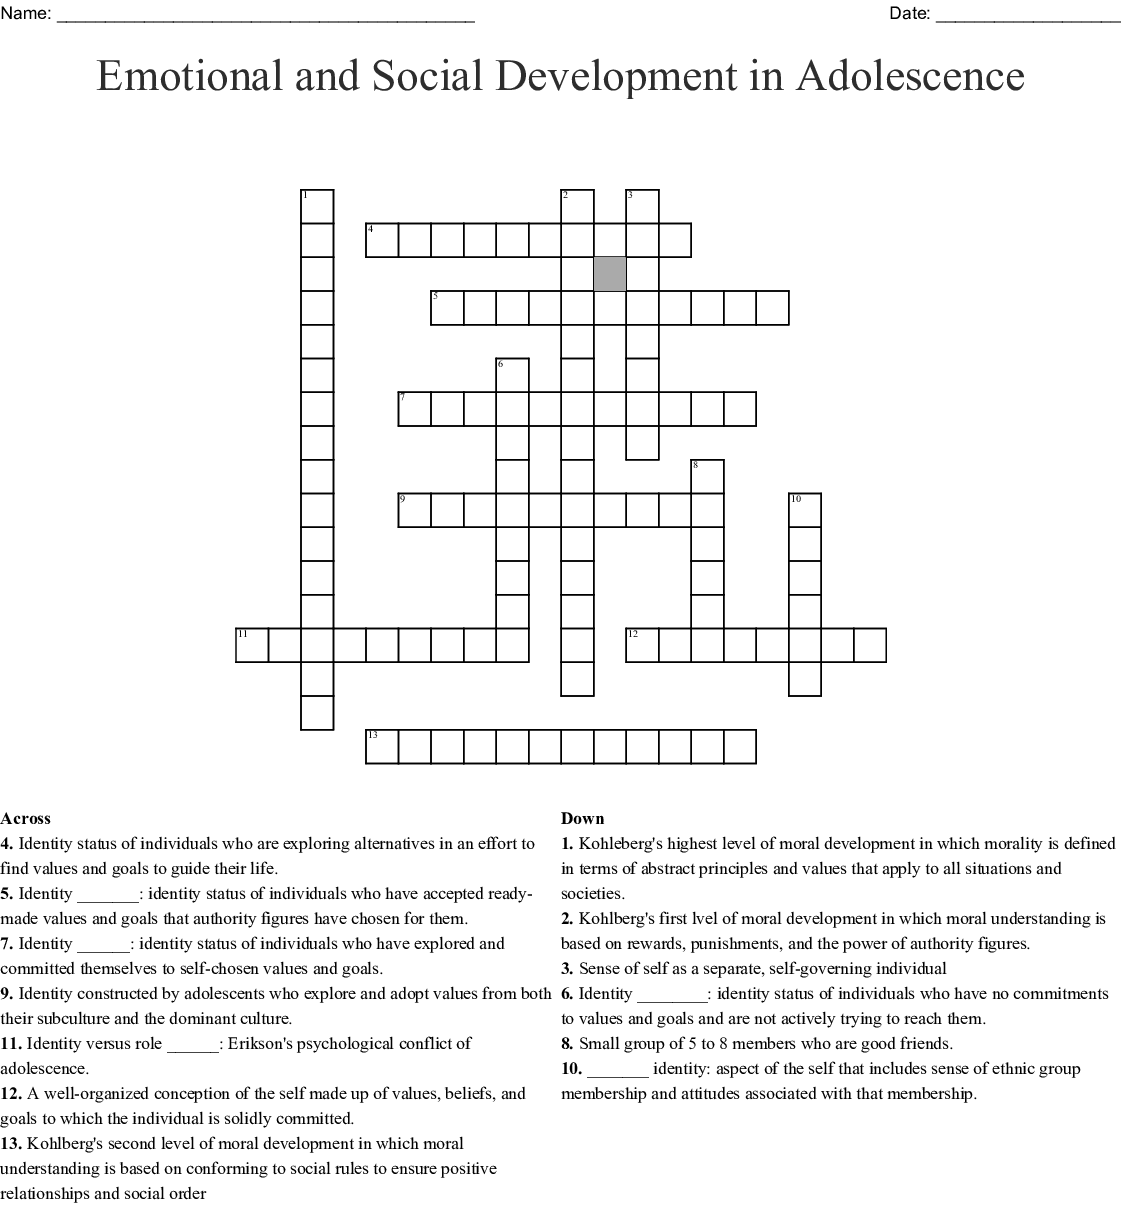 Emotional And Social Development In Adolescence Crossword